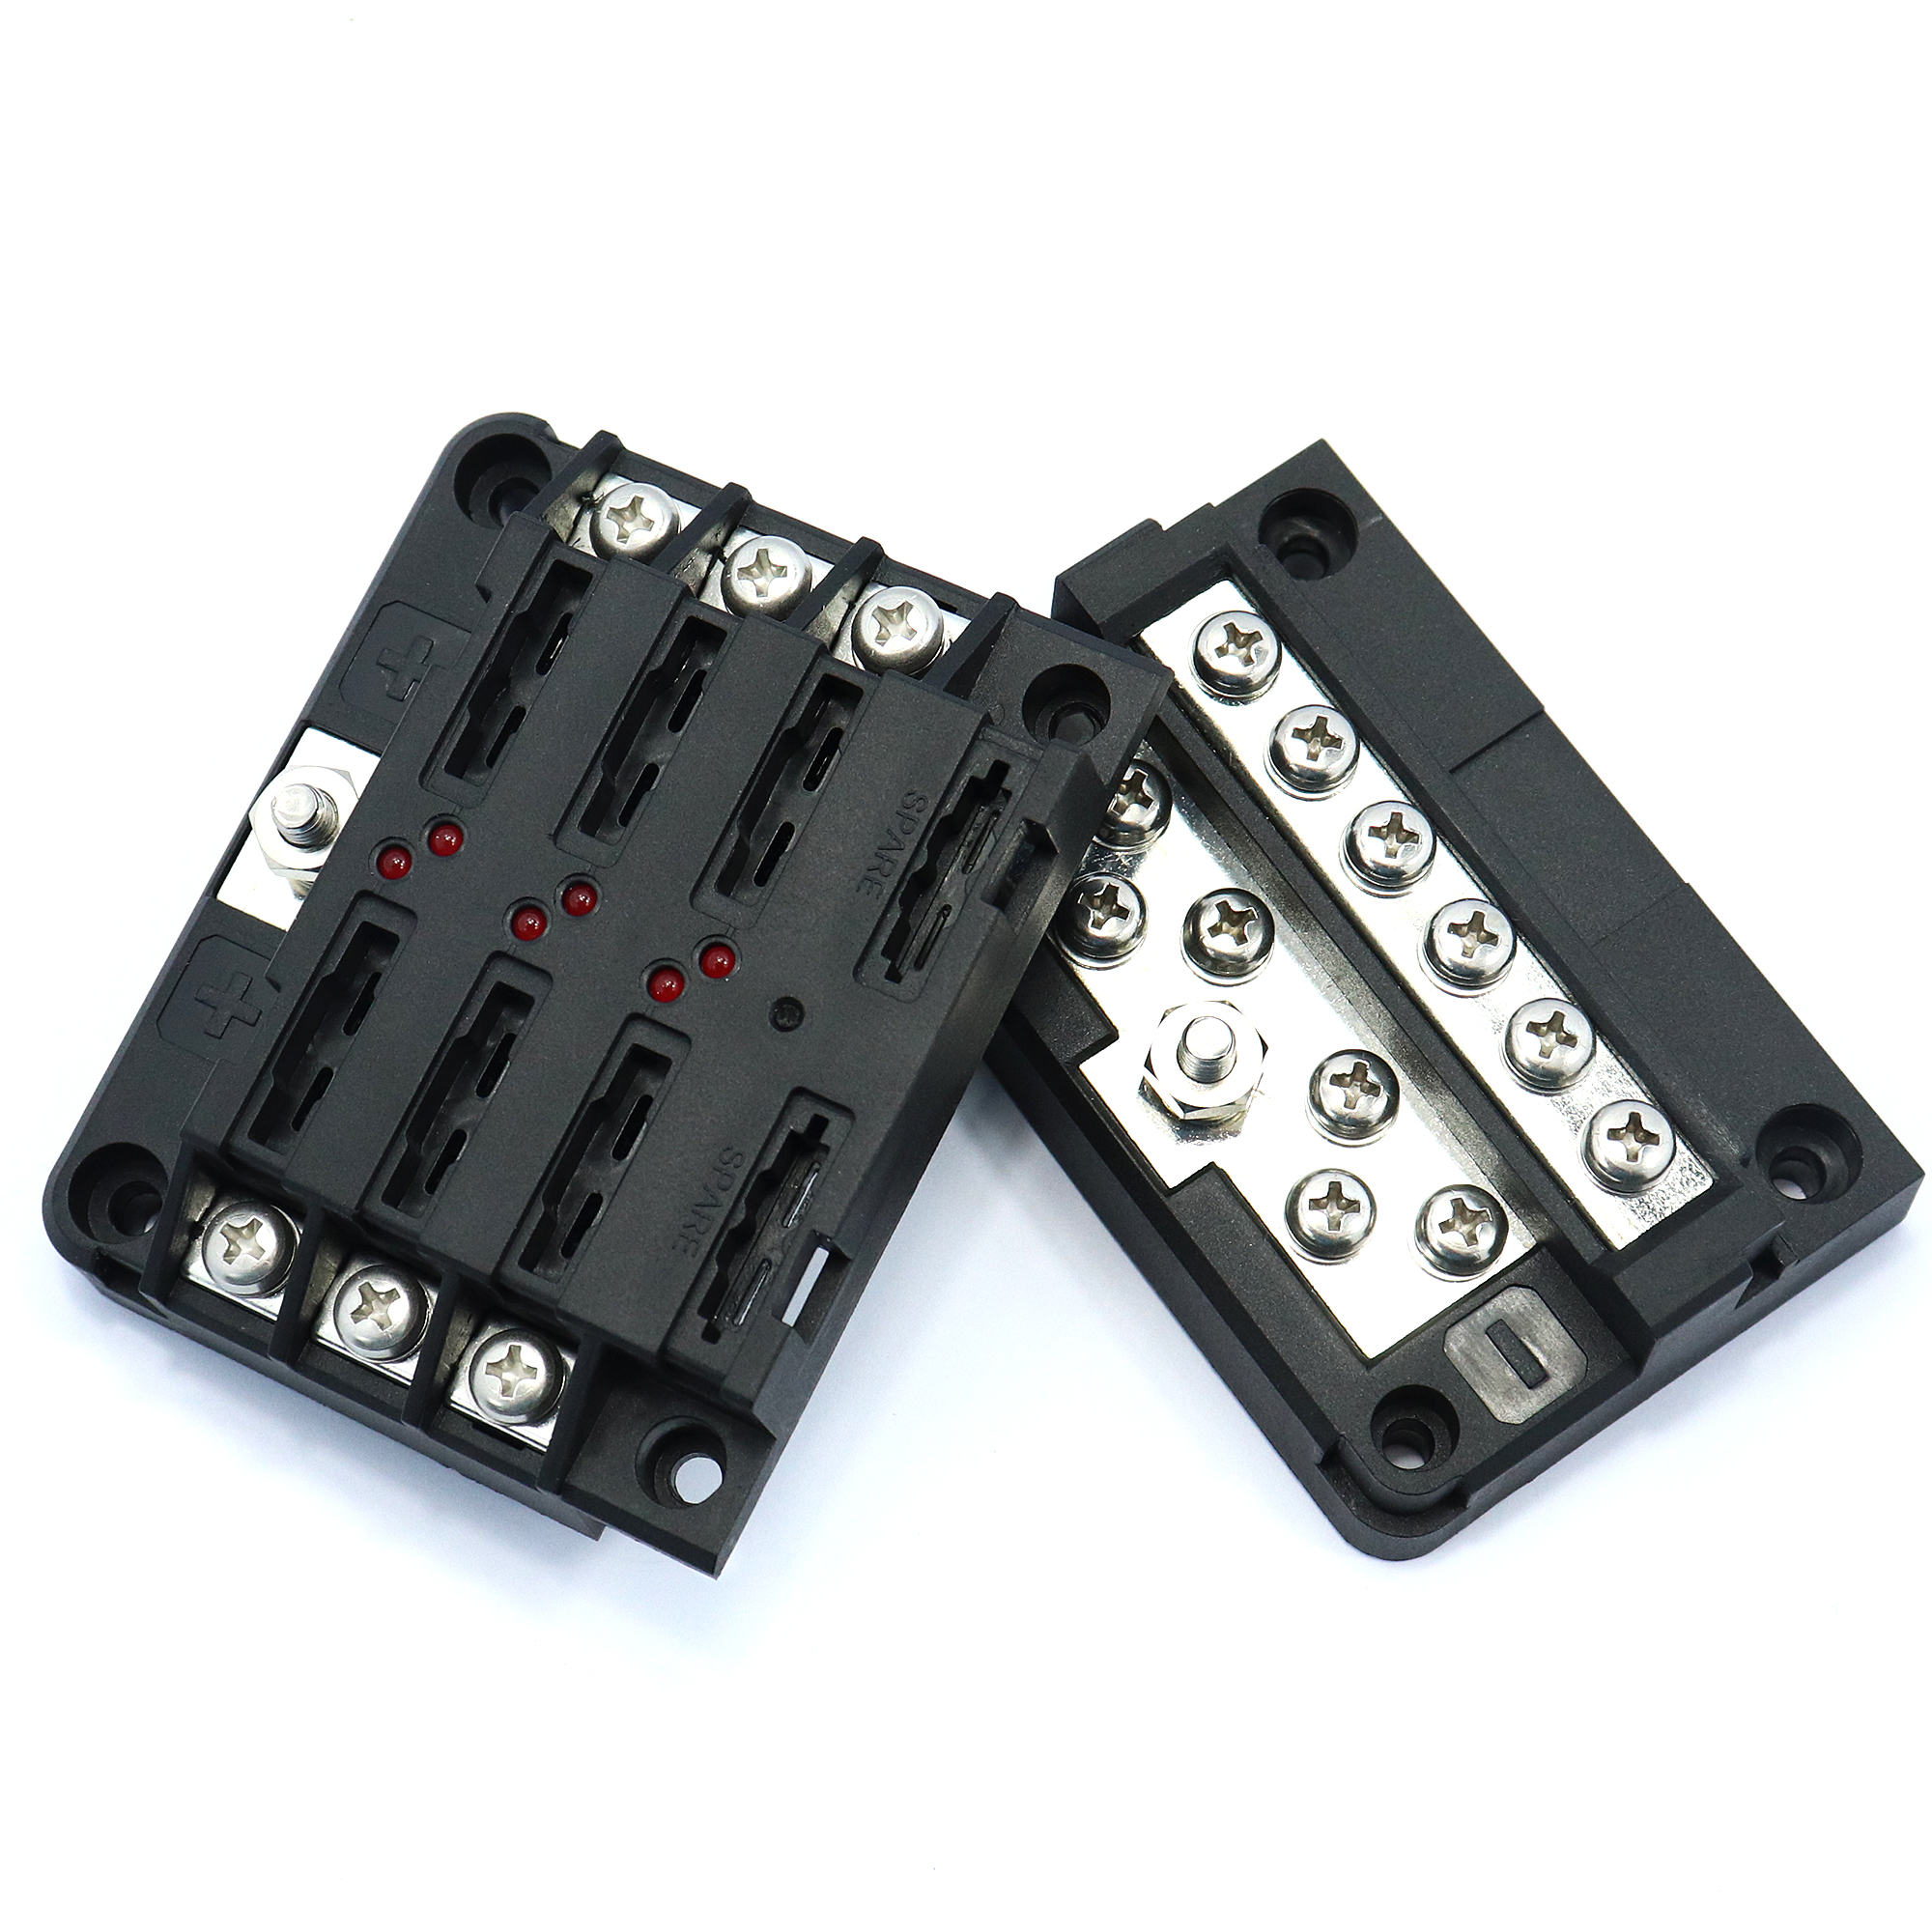 Wiring 6 Way Led Blade Fuse Box Negative Bus Bar W Cover Marine Covers Boat Car Hgv 12v 24v